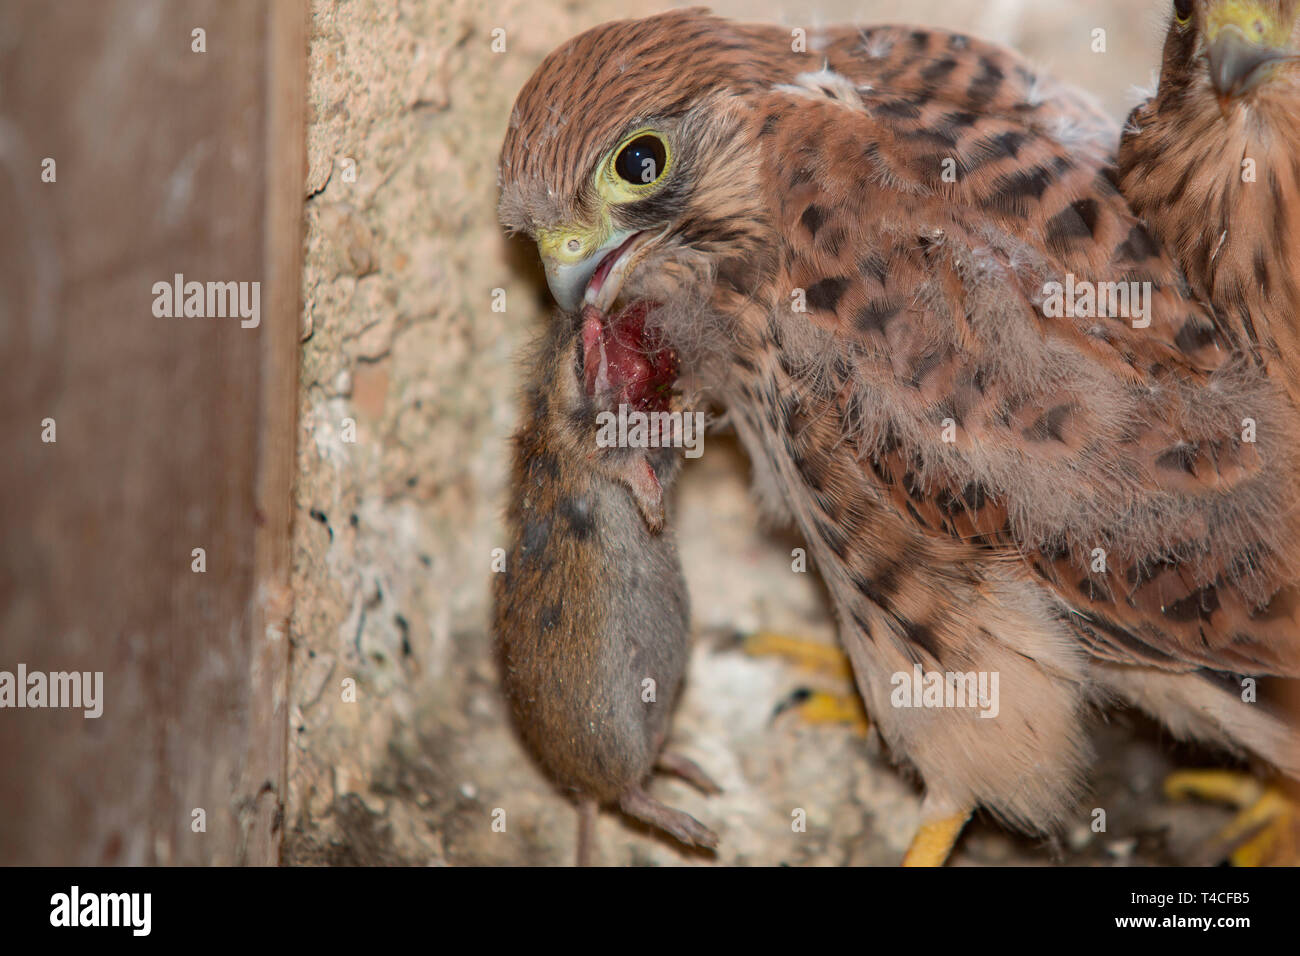 common kestrel, juvenile with mouse, (Falco tinnunculus) - Stock Image